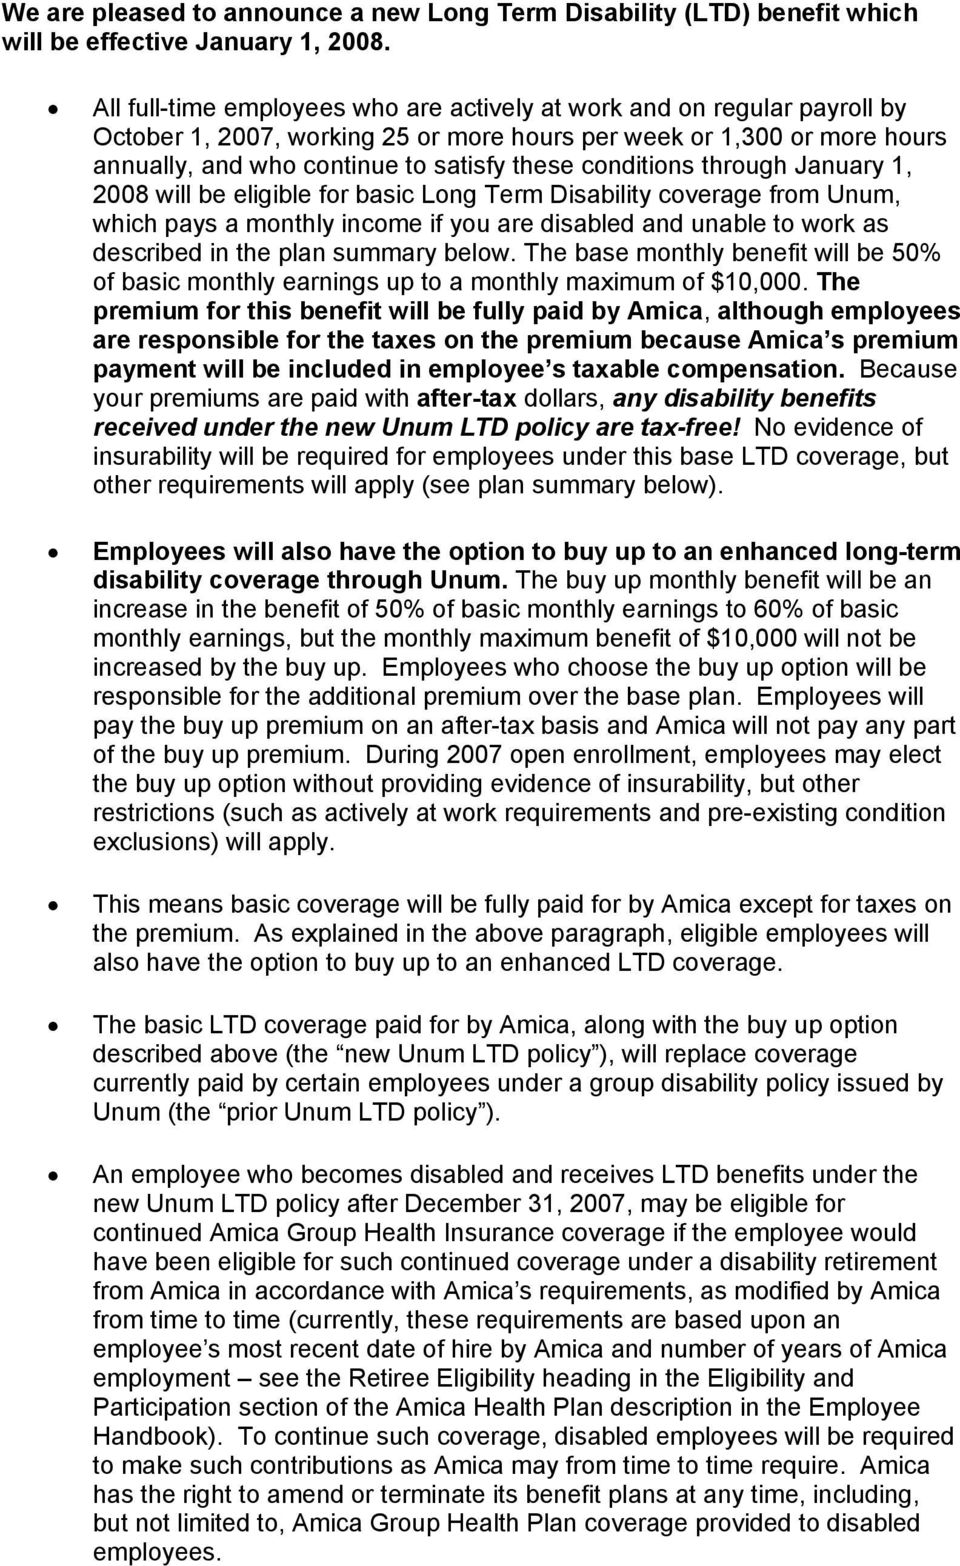 conditions through January 1, 2008 will be eligible for basic Long Term Disability coverage from Unum, which pays a monthly income if you are disabled and unable to work as described in the plan